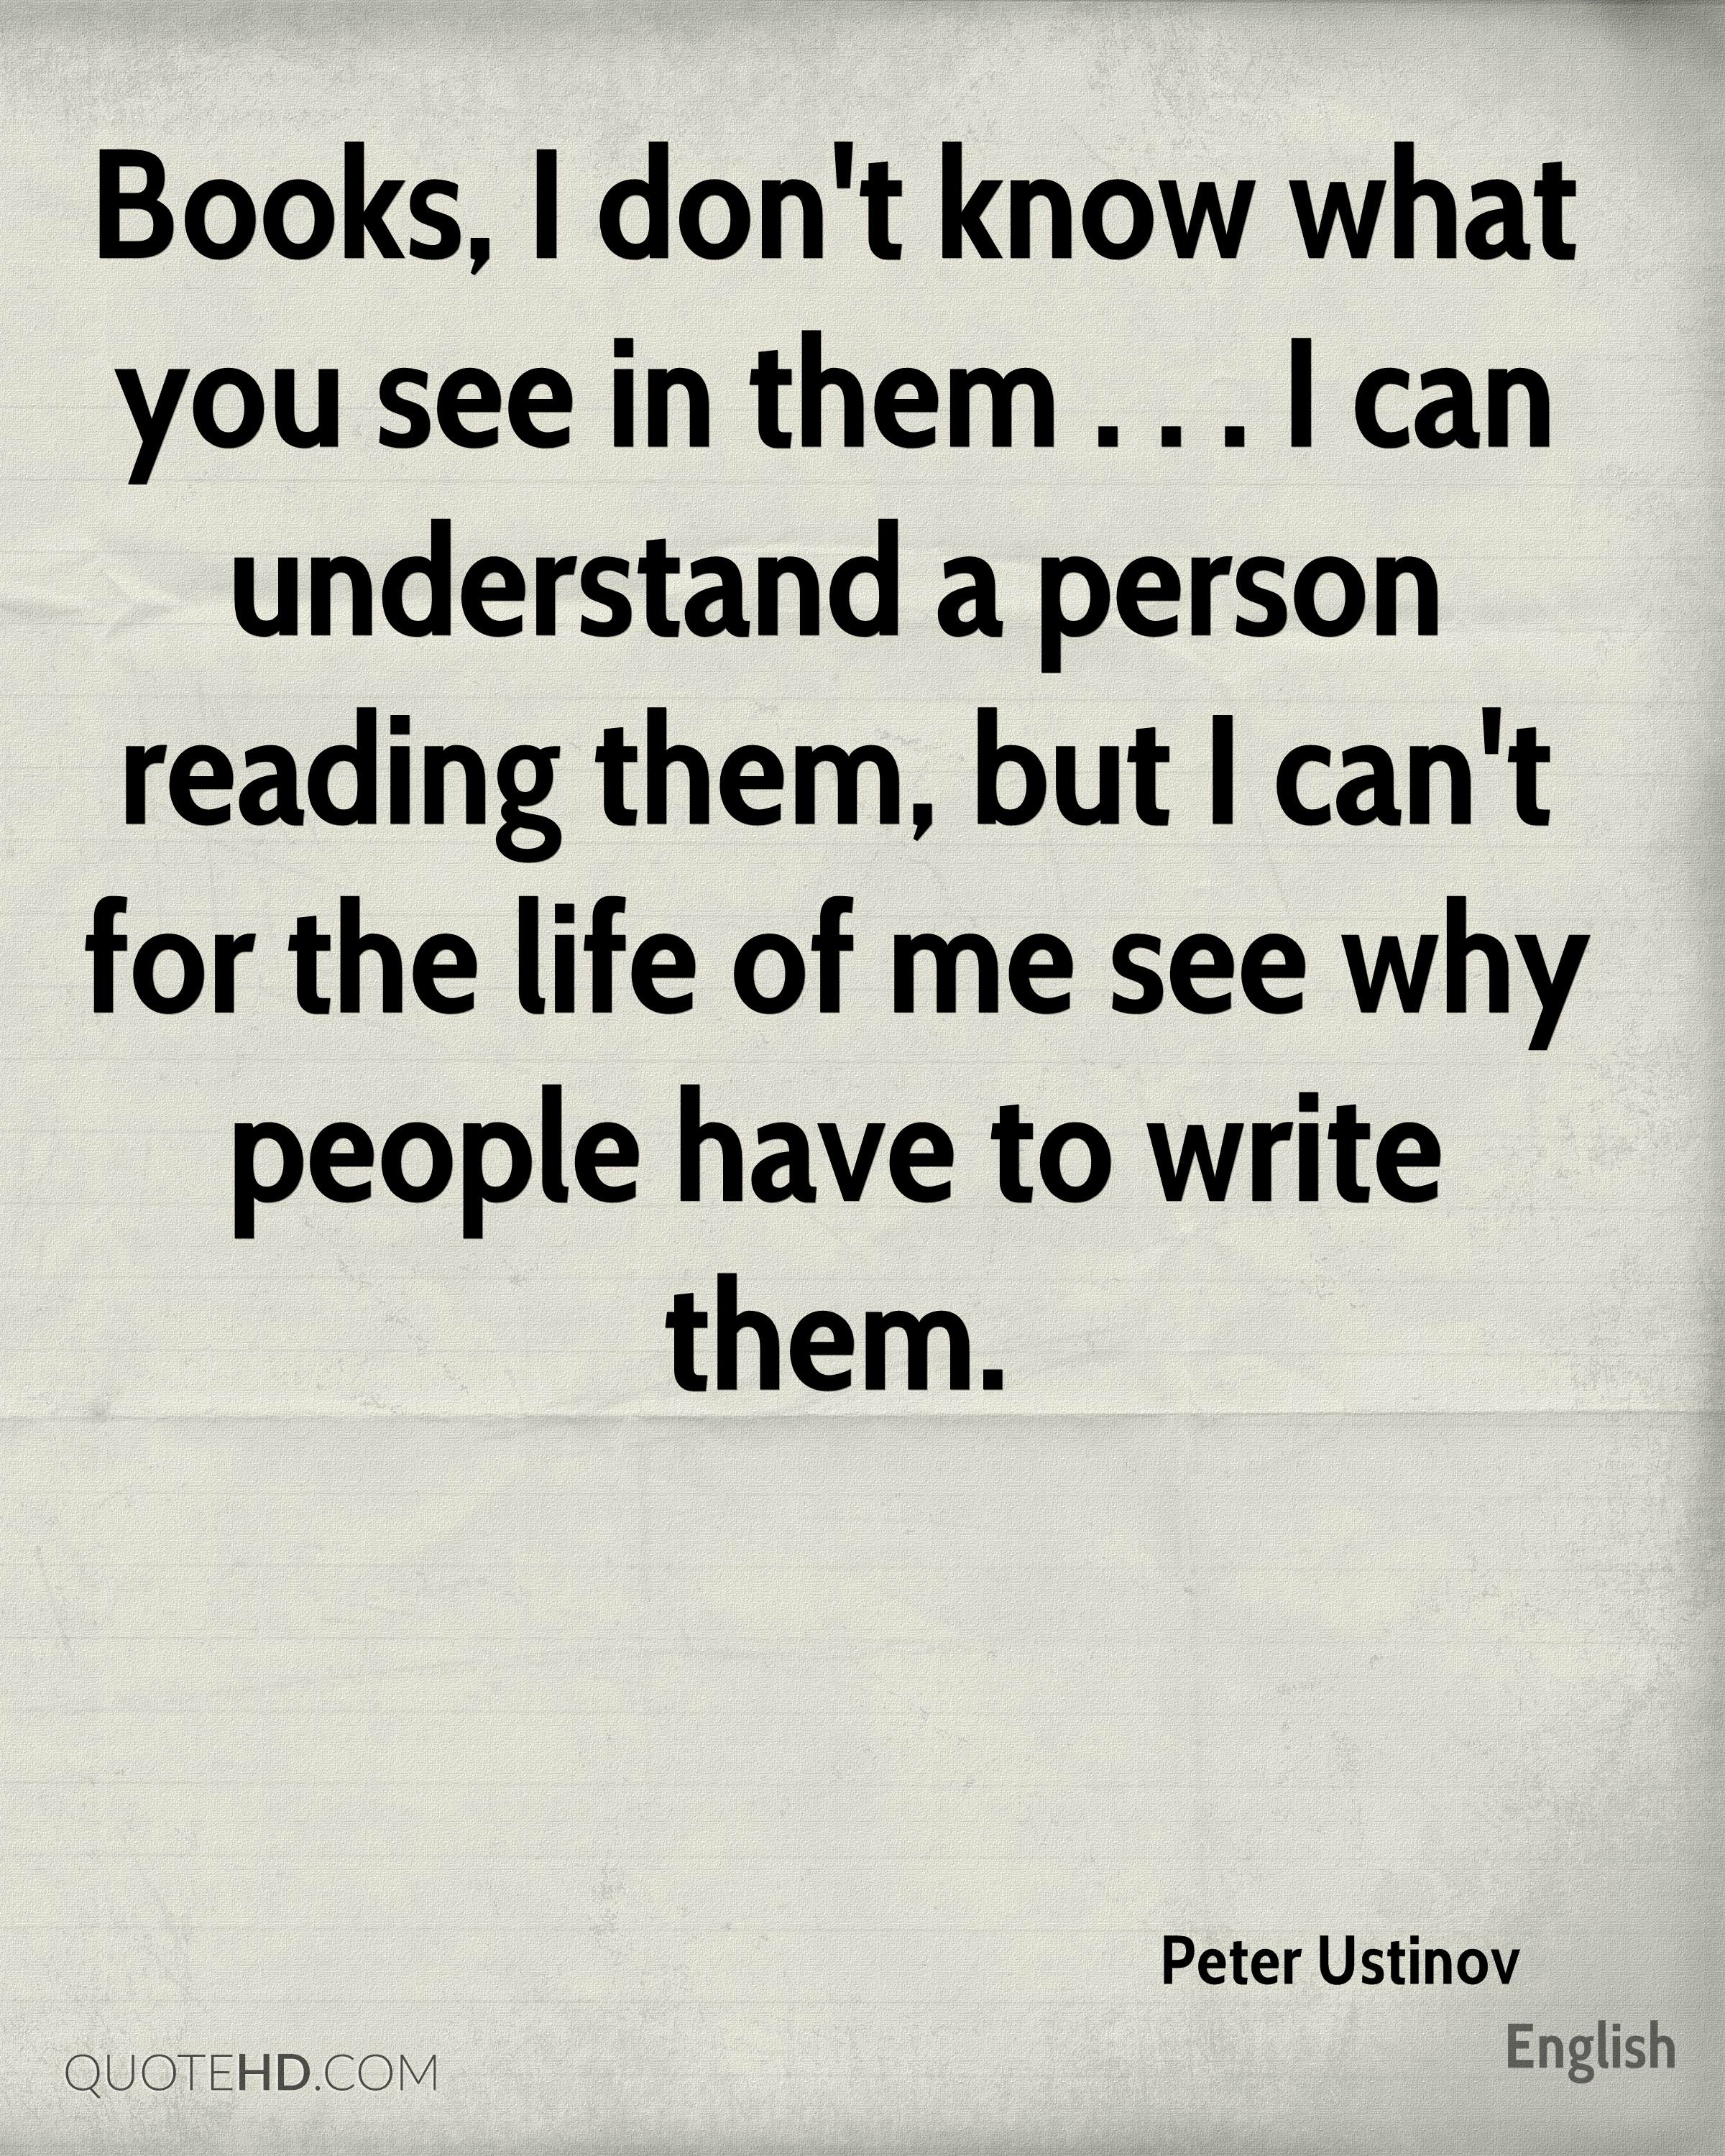 Books, I don't know what you see in them . . . I can understand a person reading them, but I can't for the life of me see why people have to write them.